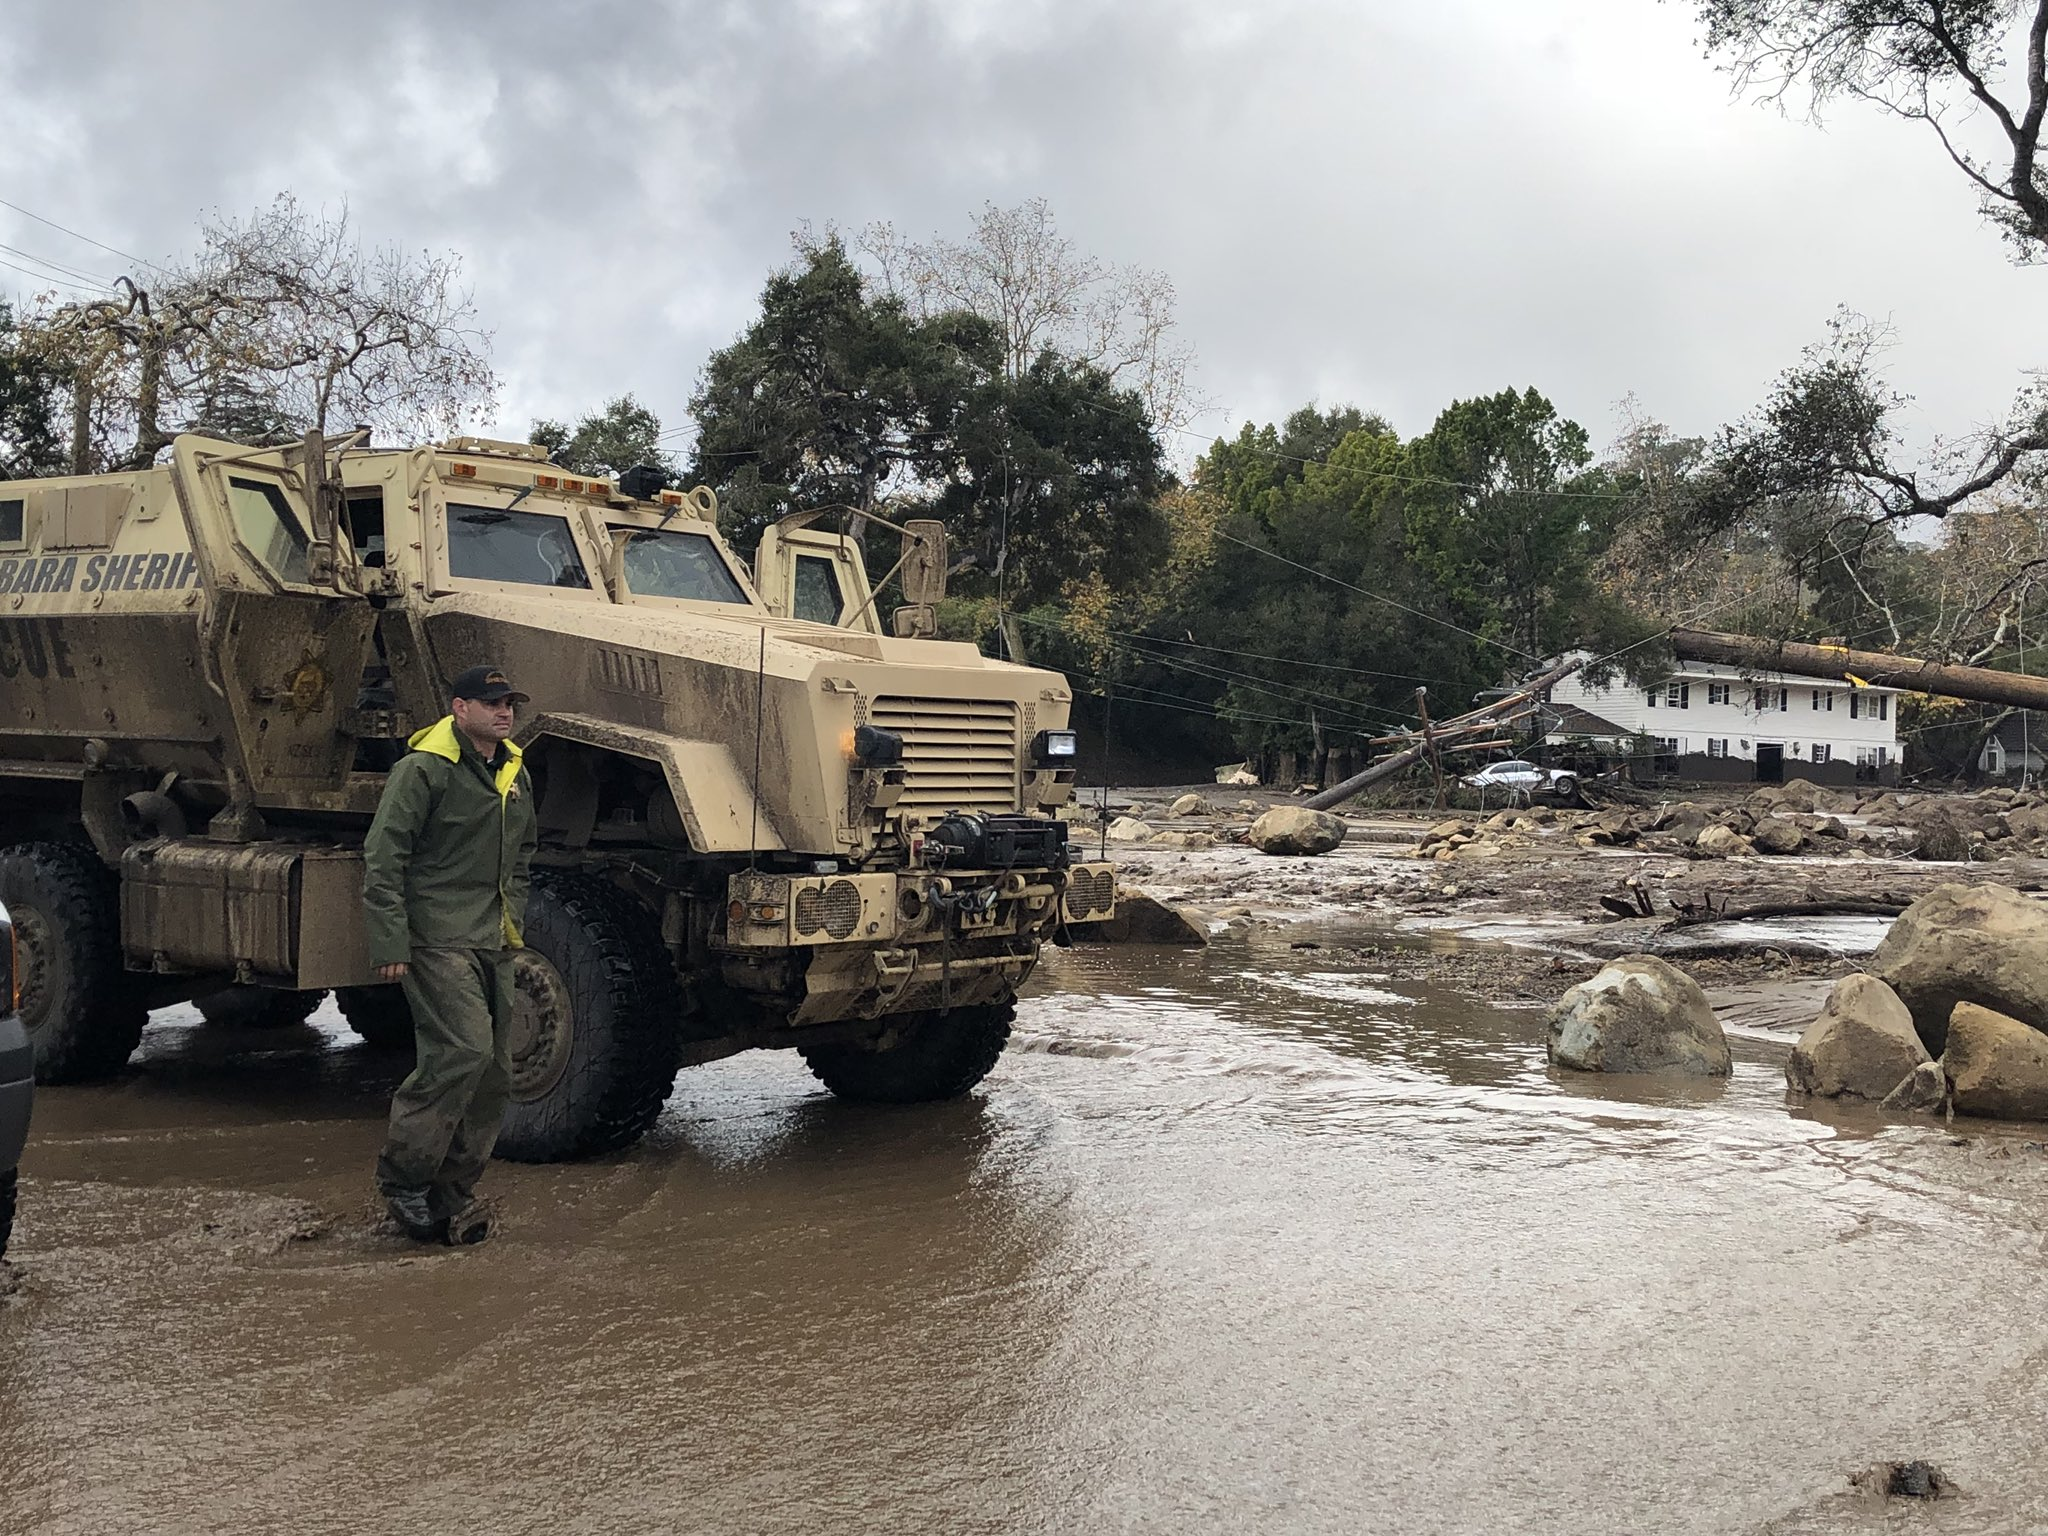 A Santa Barbara County Sheriff's Rescue Vehicle is staged while trying to get past vehicles on Hot Springs Road in Montecito. Deadly mudflow from overnight rain destroyed homes and killed at least 8 people.{ }(Photo & Caption: Mike Eliason, Santa Barbara County Fire Dept.)